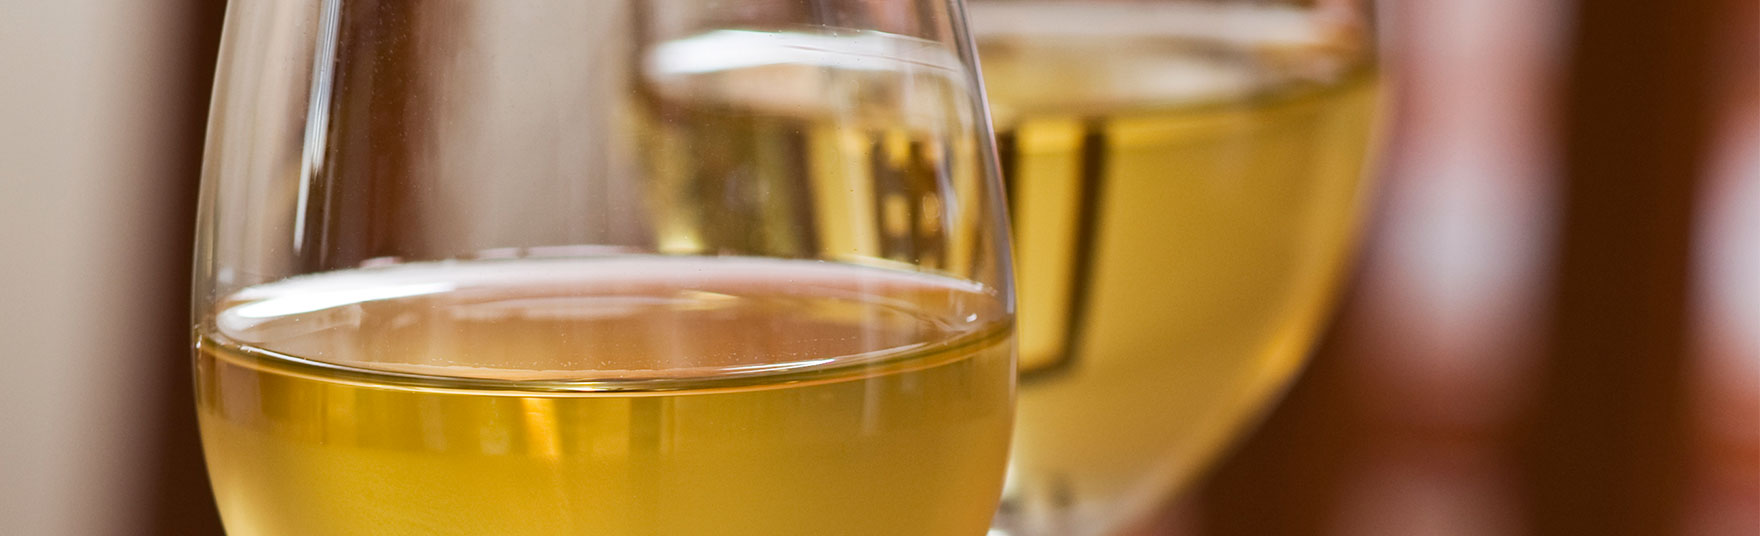 Types of Wine: Riesling